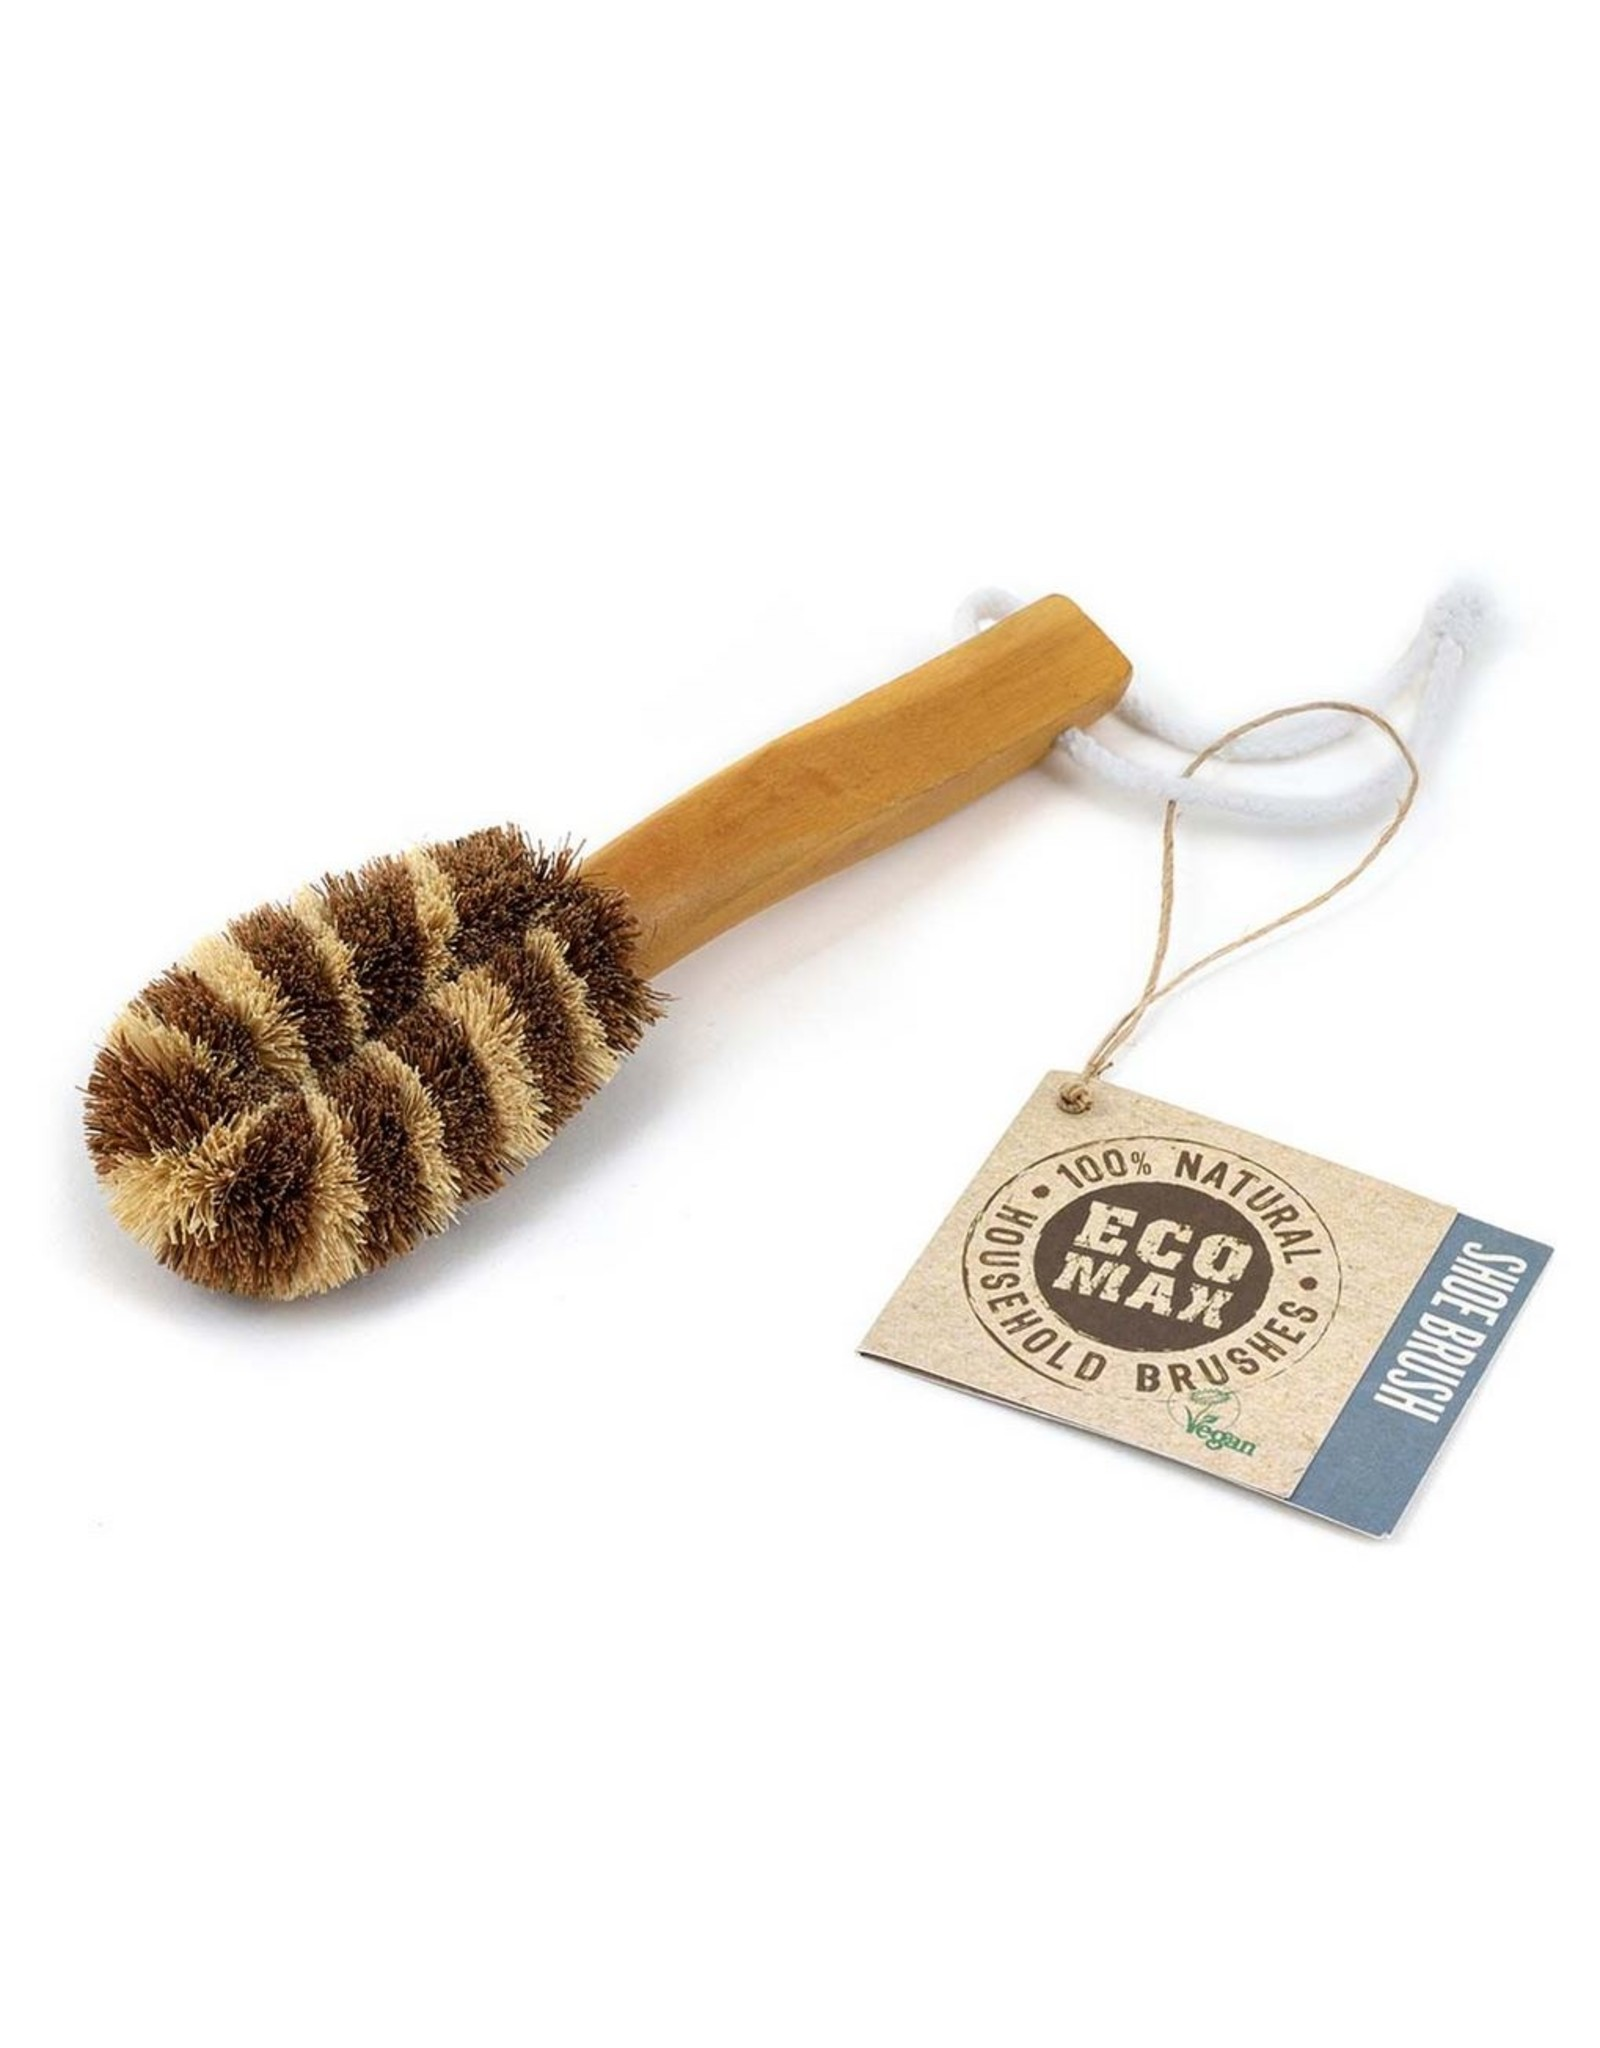 Academy Shoe Shine Brush 16x4.5x4cm